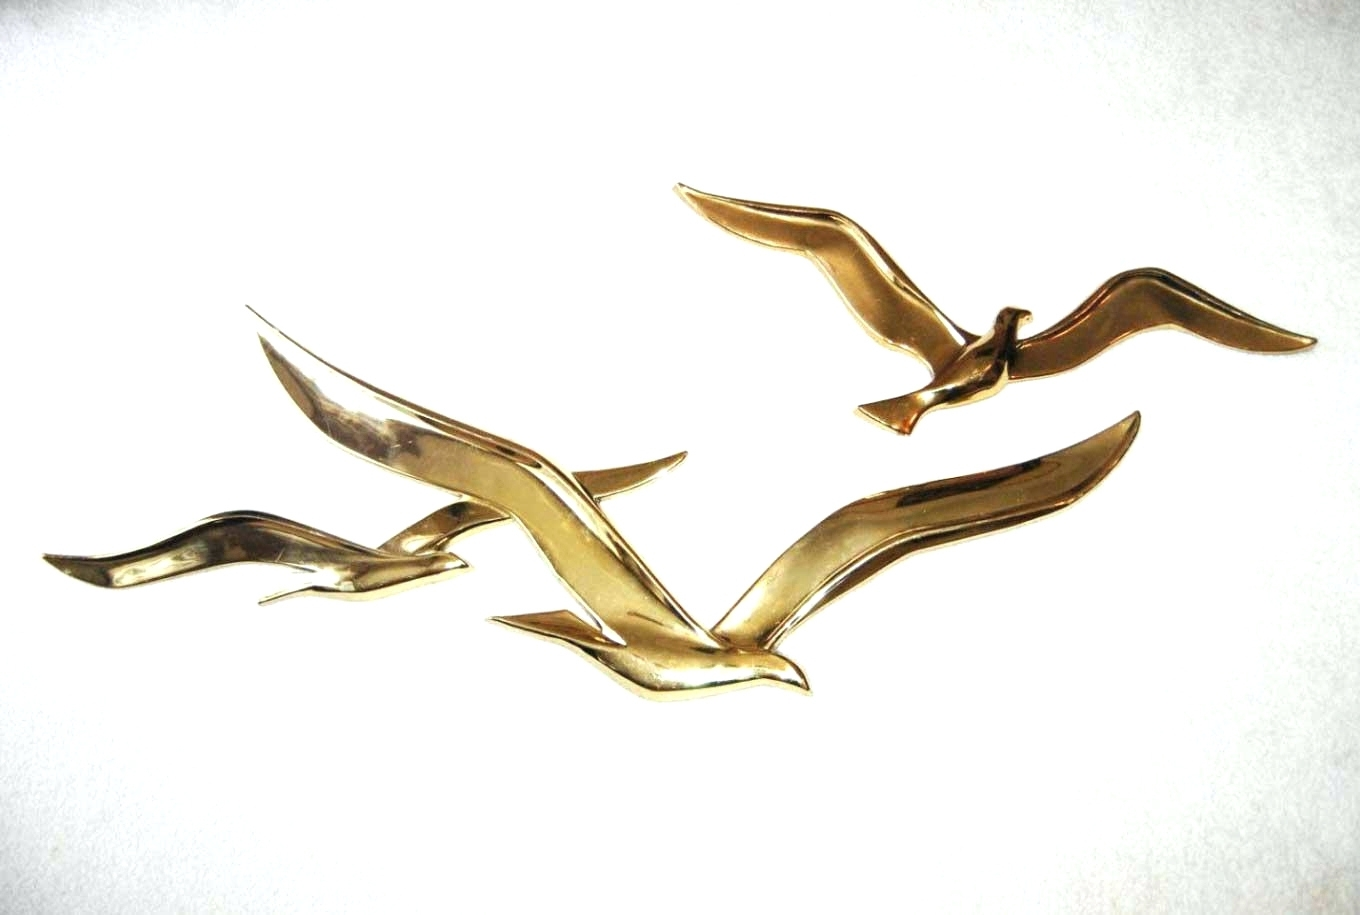 Recent Wall Arts ~ Metal Seagulls Wall Art Brass Seagulls Wall Art Flock Pertaining To Seagull Metal Wall Art (Gallery 6 of 15)